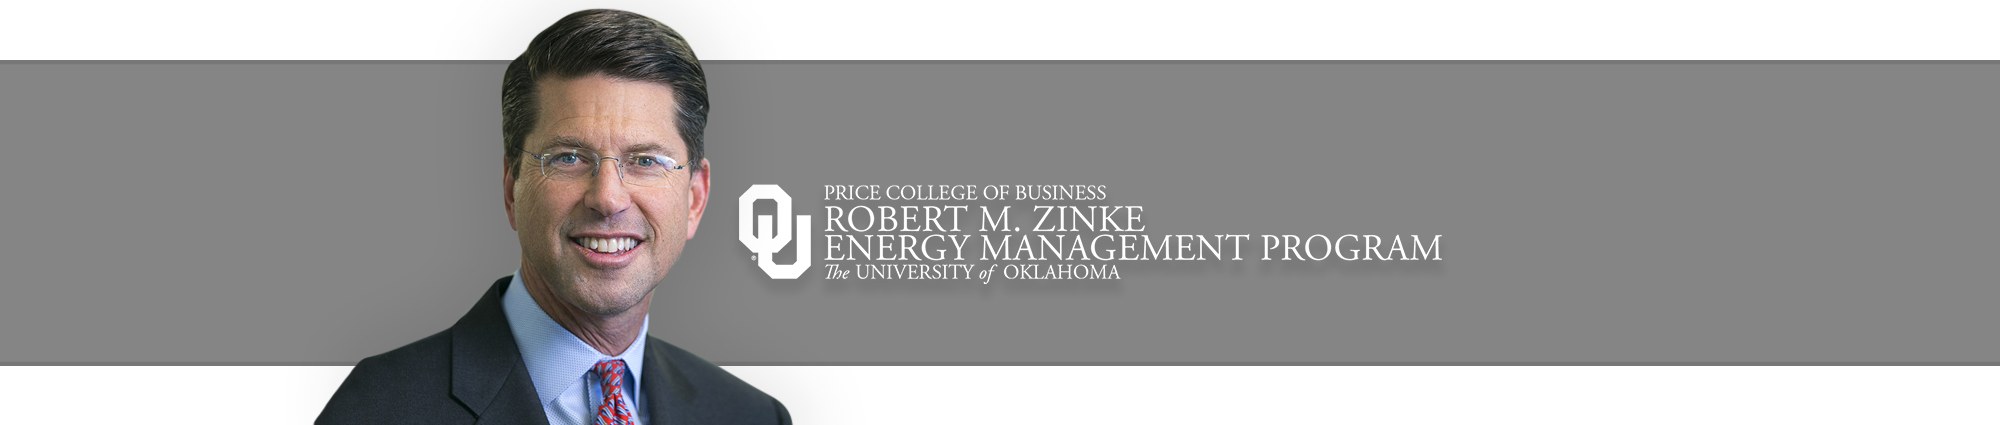 Mike McConnell, Director, Robert M. Zinke Energy Program